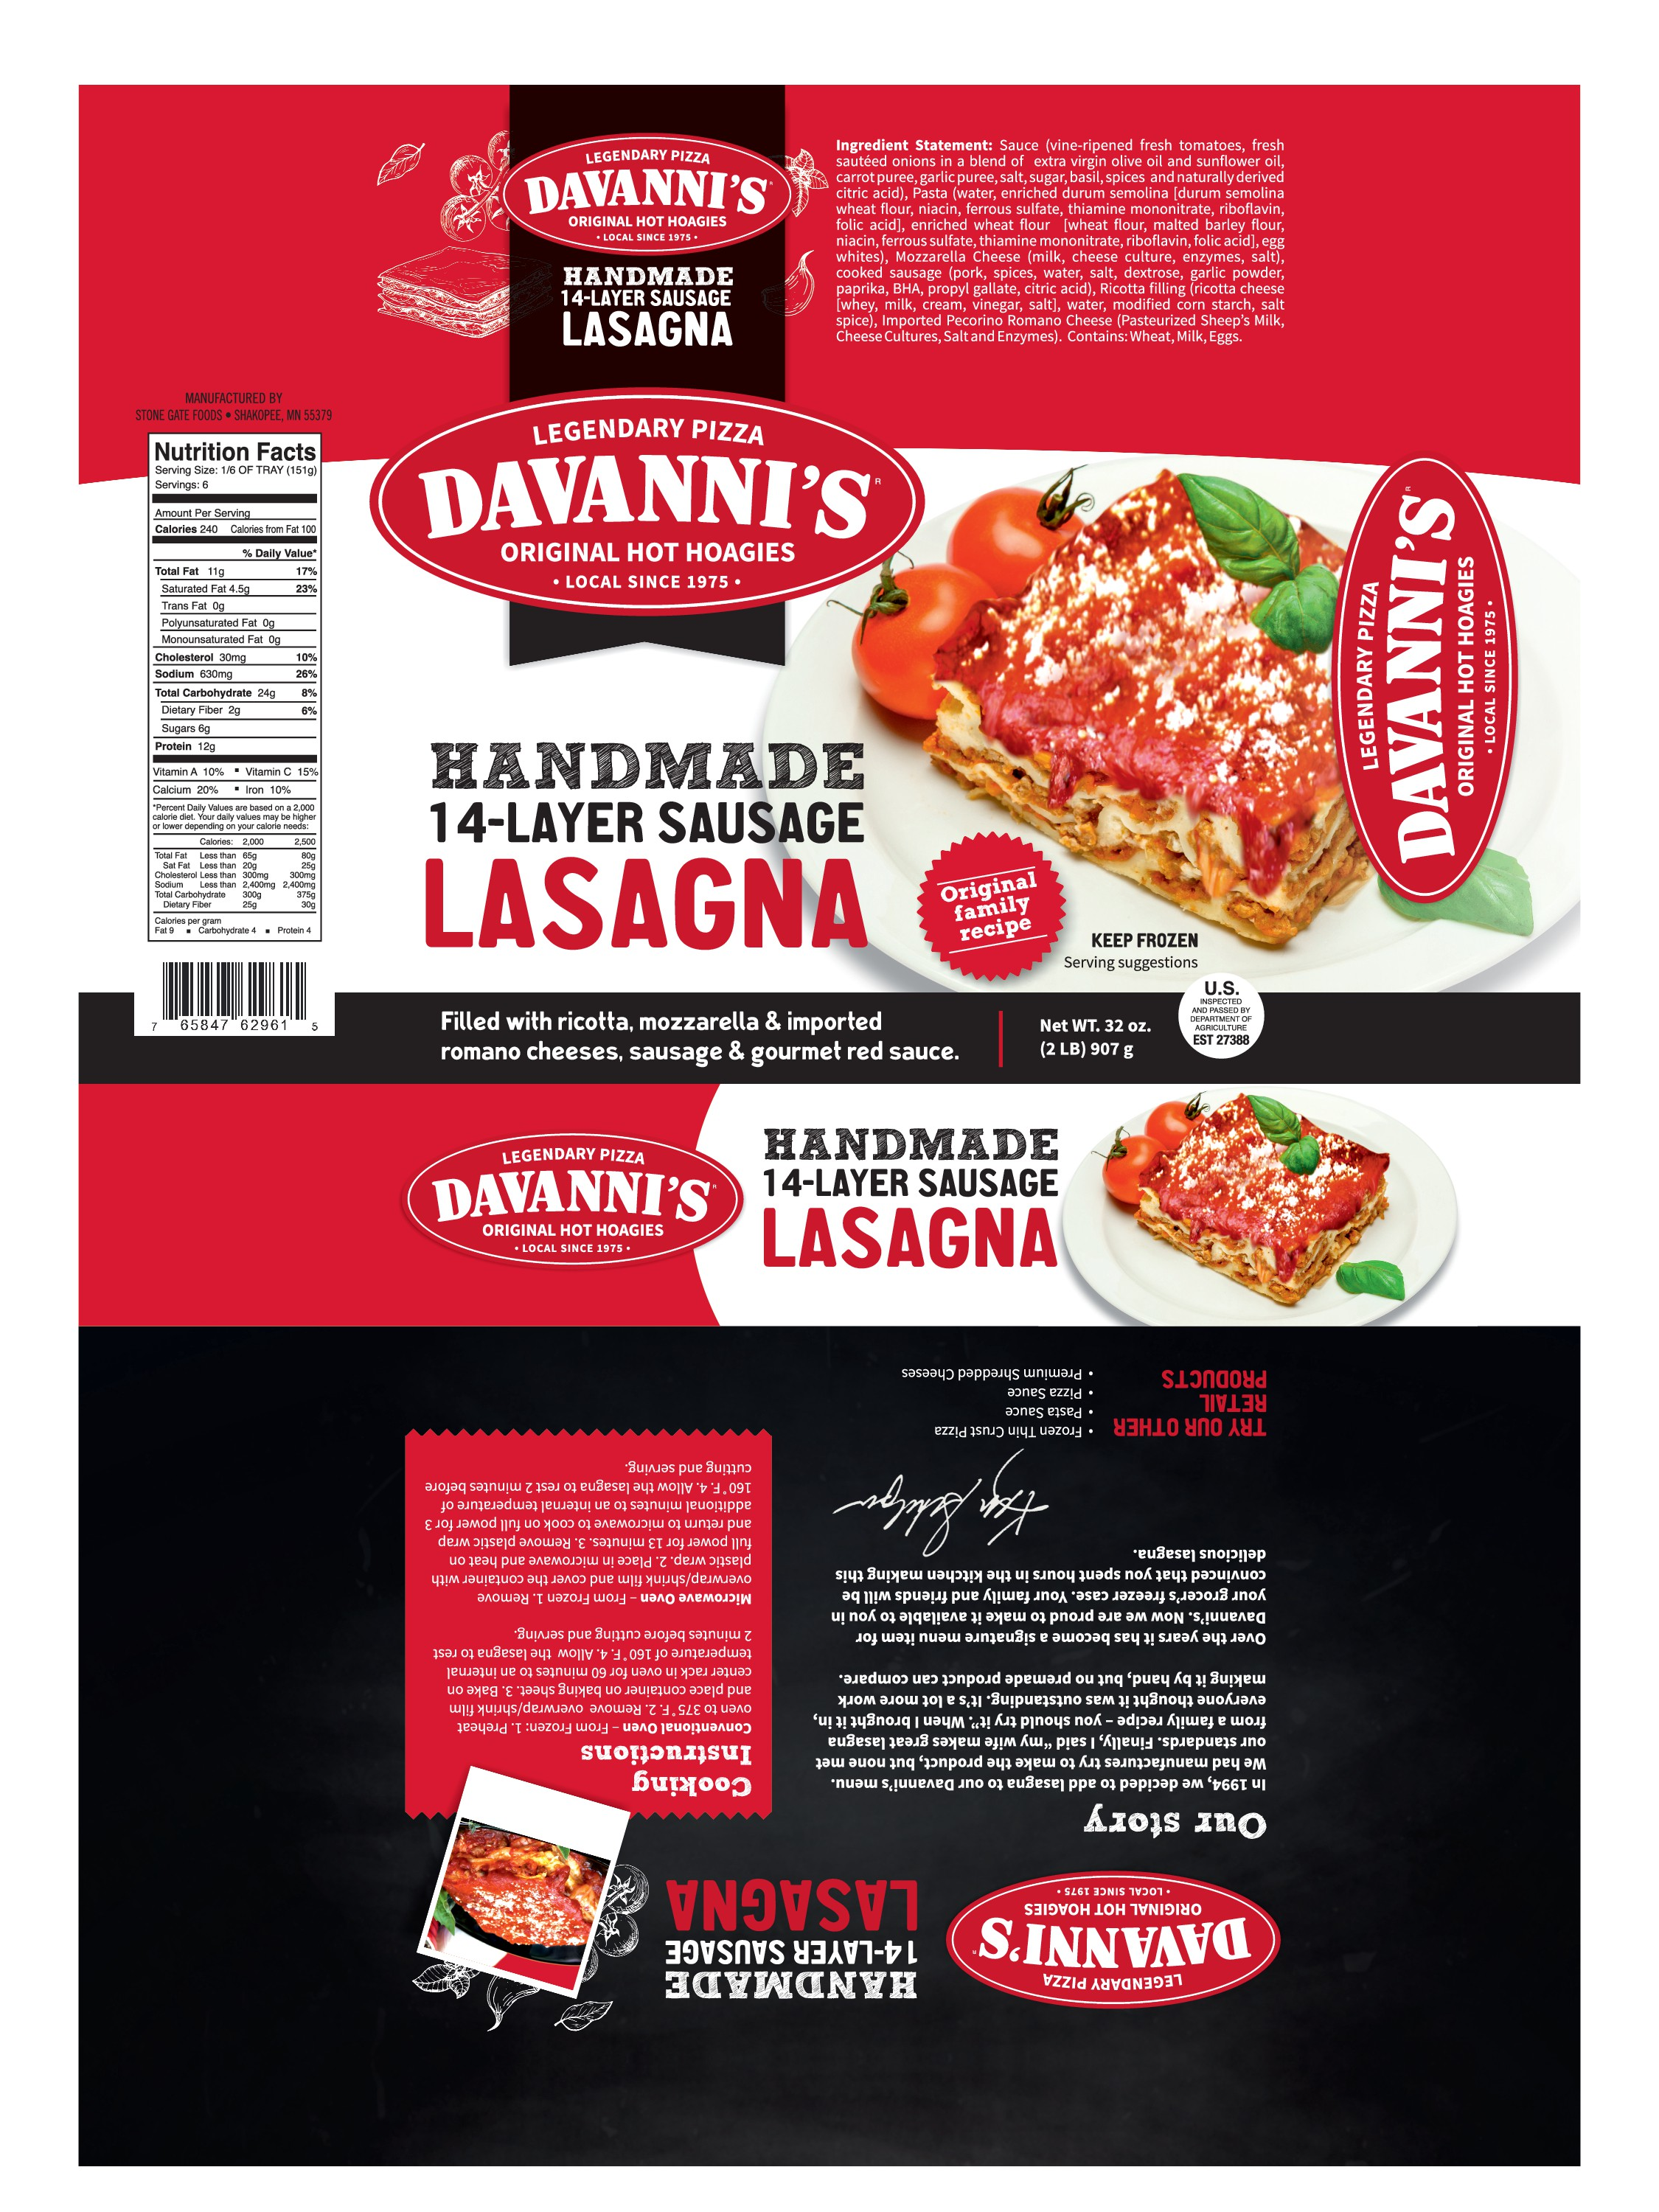 We need a major upgrade to our Retail Lasagna Packaging!